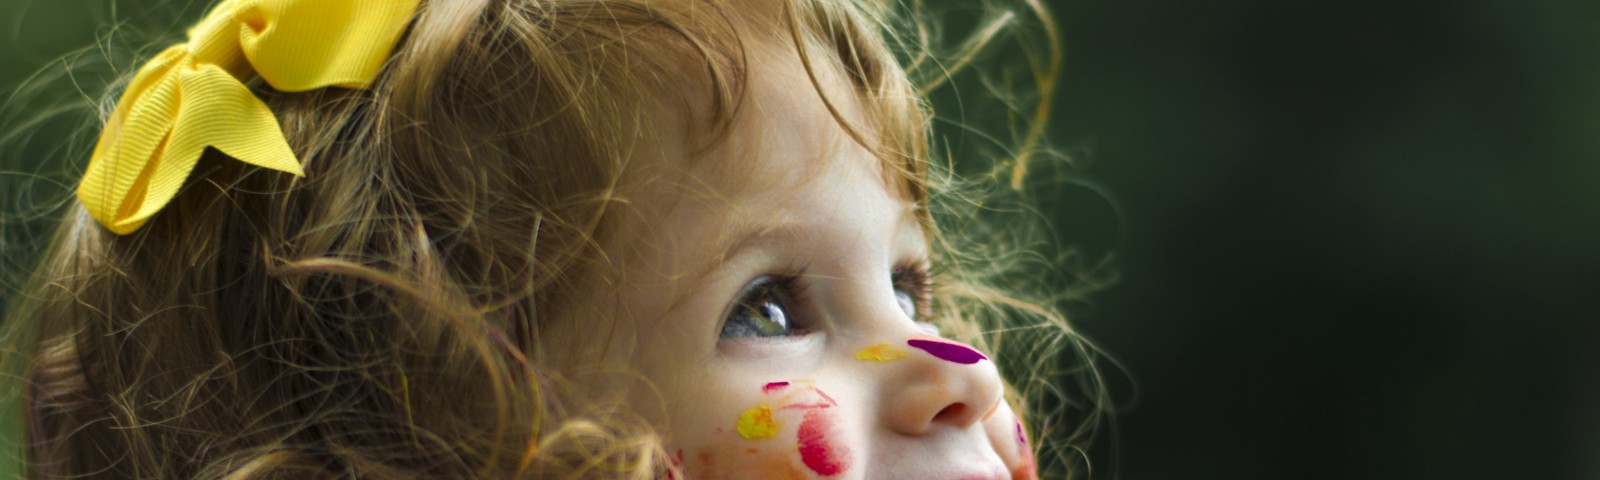 Little girl with a big smile, looking up and photographed from her right side. Brown hair and green eyes, with a yellow bow in her hair and lots of colorful paint stains on her nose, cheeks, neck, and white blouse.